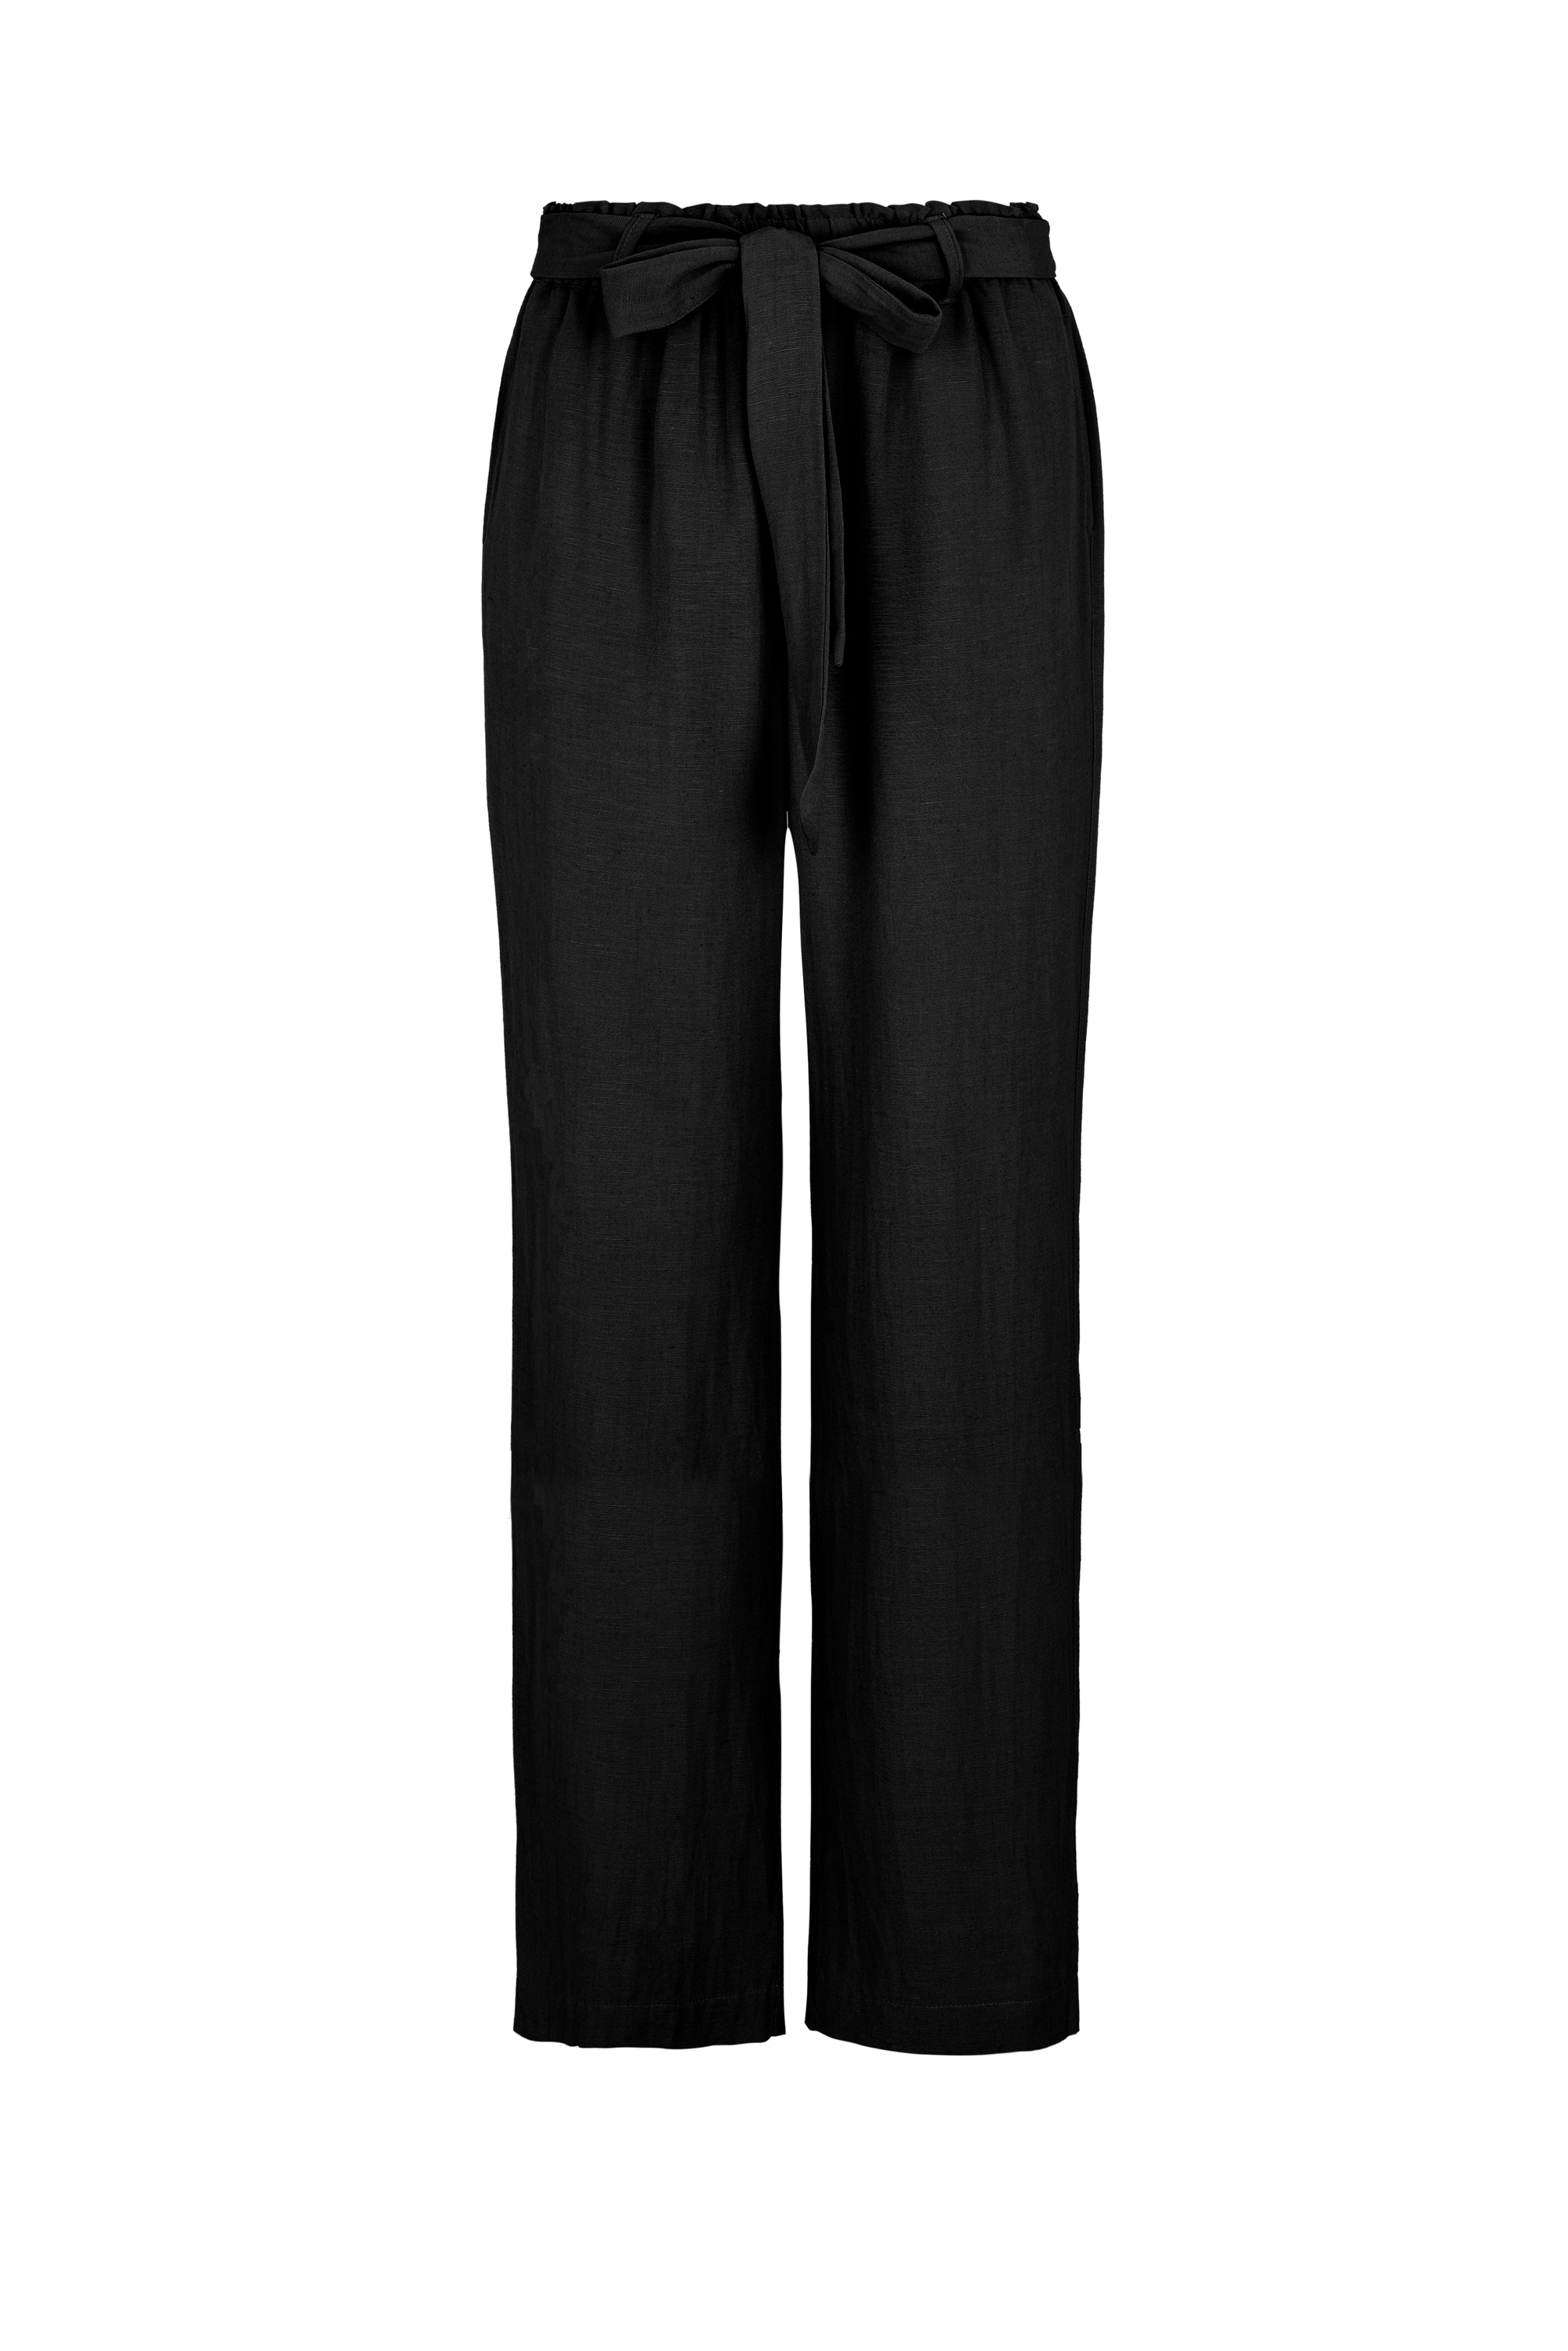 million-x -  5-Pocket-Hose Marlene